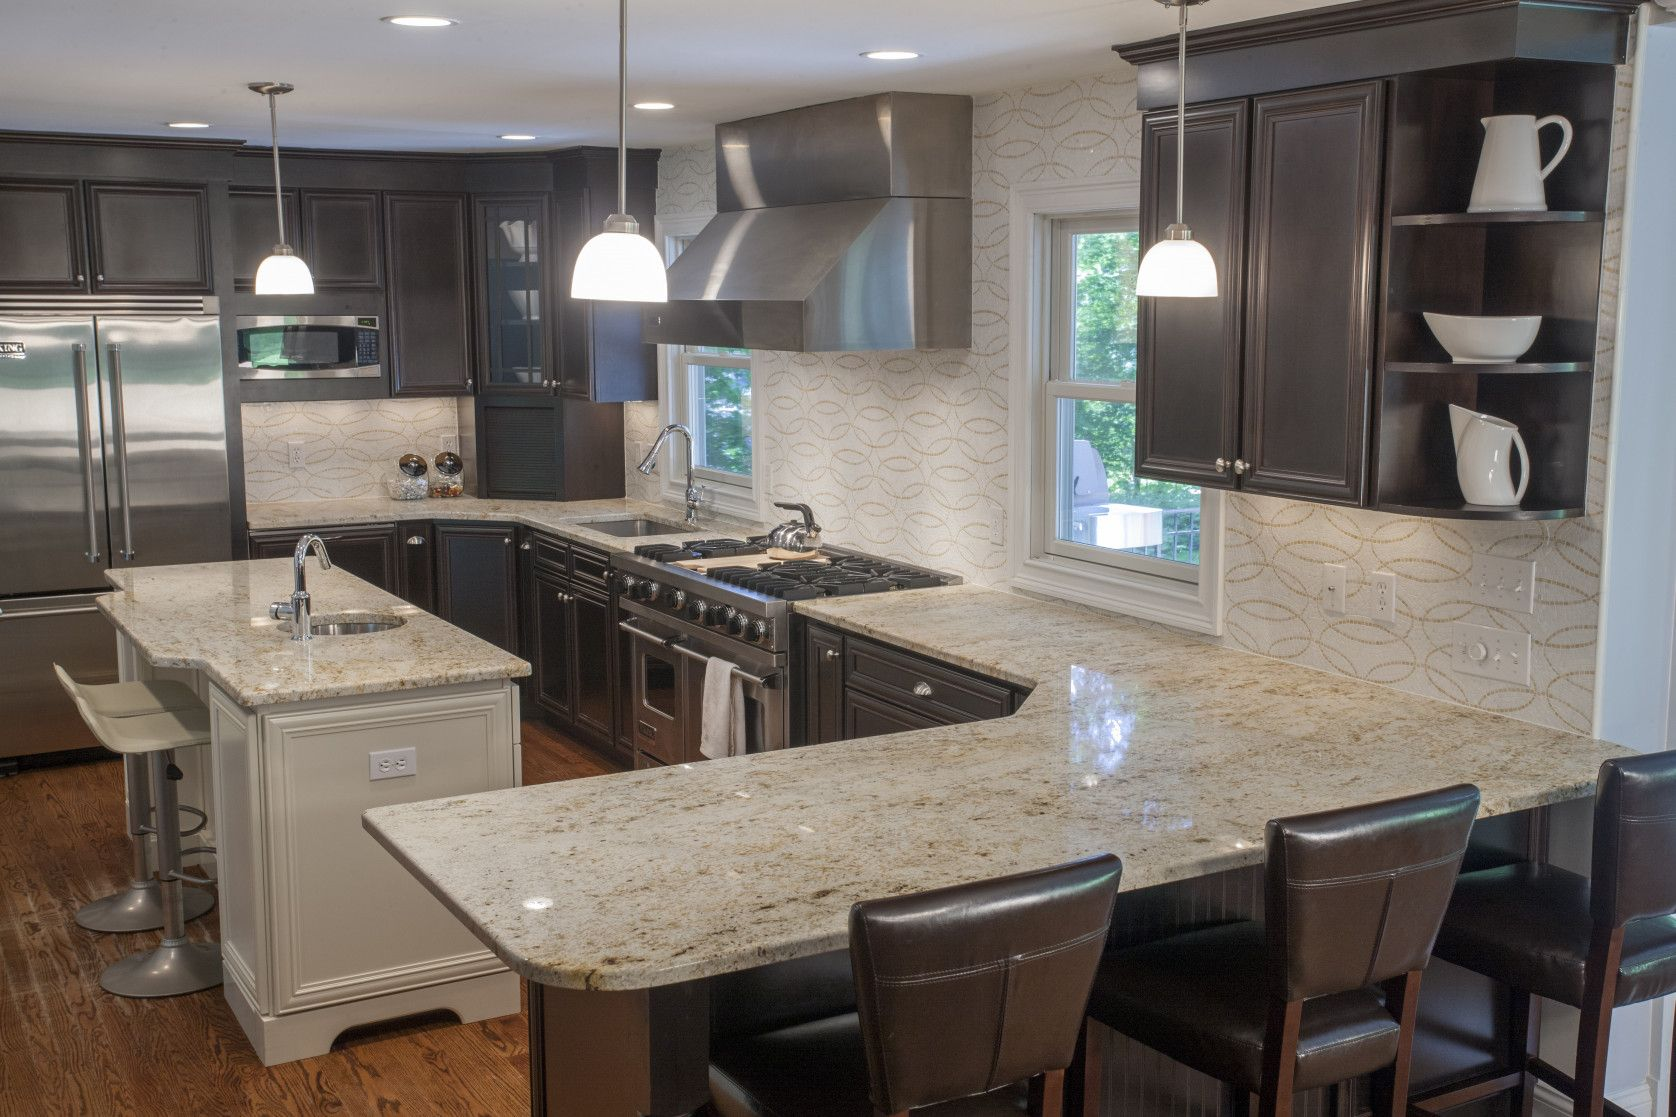 55 Cabinet And Countertop Combinations Kitchen Floor Vinyl Ideas Check More At Http White Kitchen Interior Concrete Countertops Kitchen Light Grey Kitchens